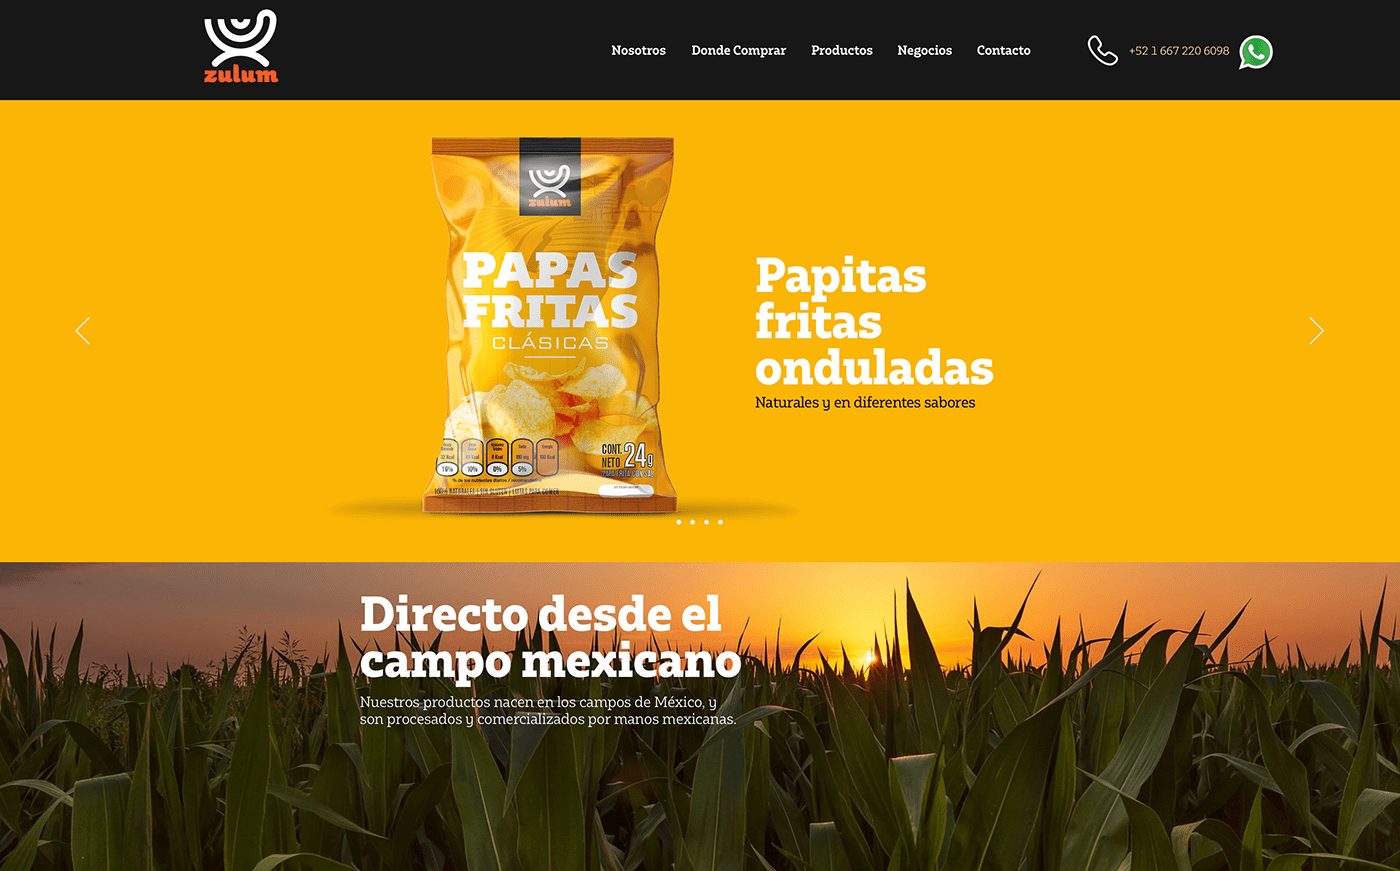 branding ,Food ,Identity System,Logo Design,package design ,Packaging,snacks,type,wix